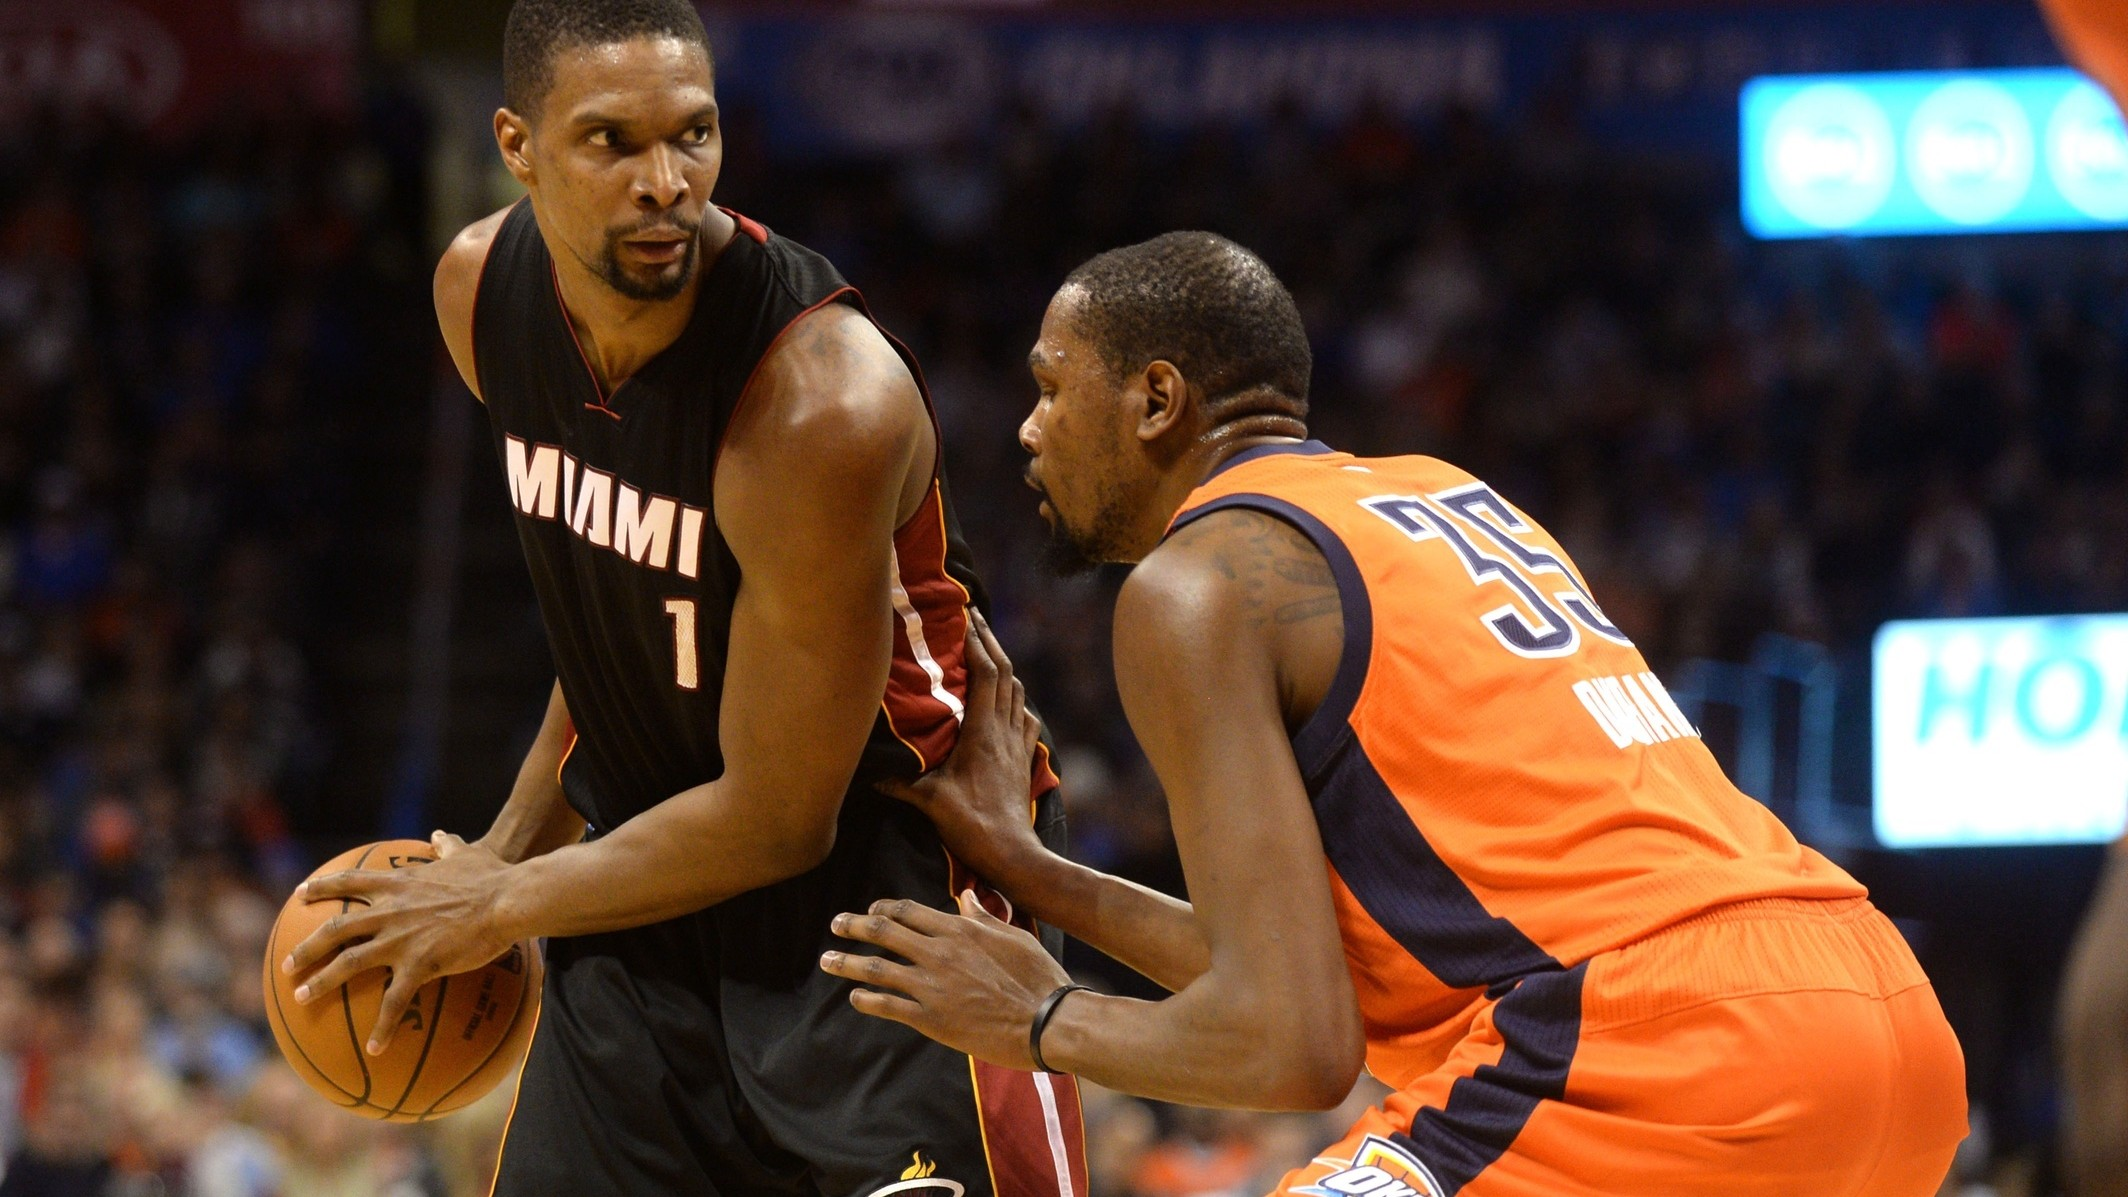 A Year After Nearly Losing It All Chris Bosh Is All the Way Back